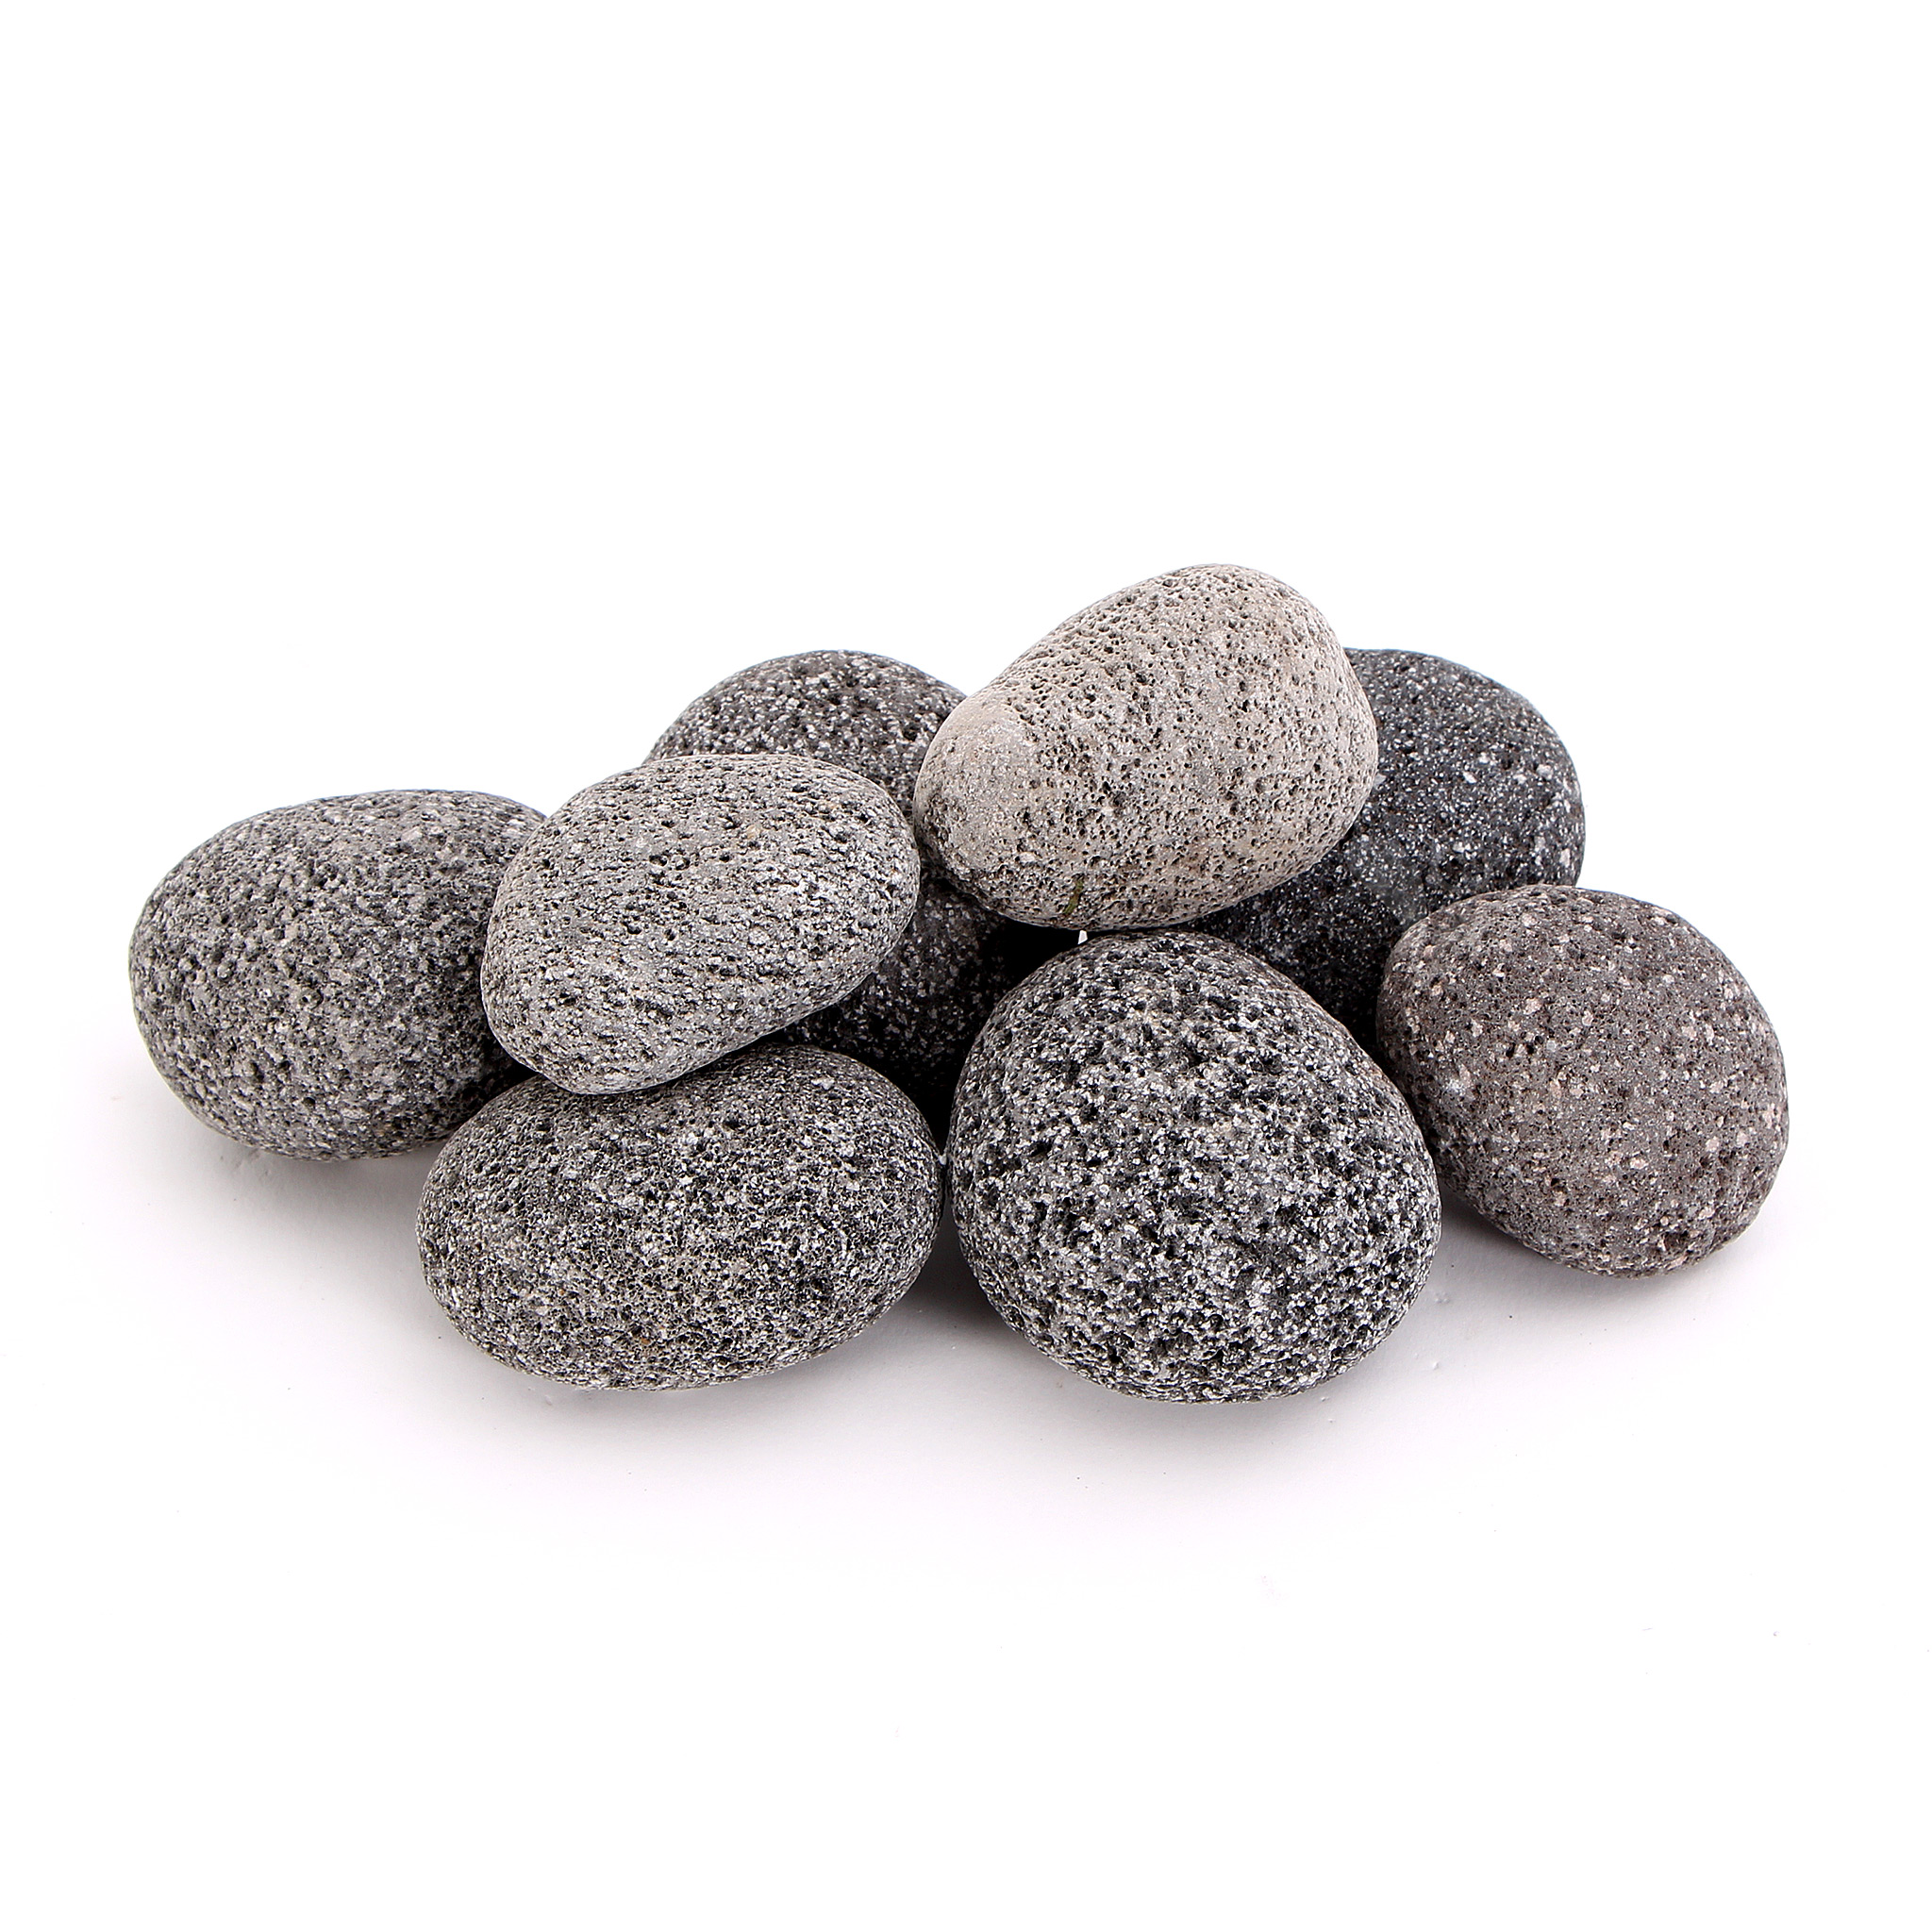 Deko Steine Aquarium: Black Pebble Nano Pebbles